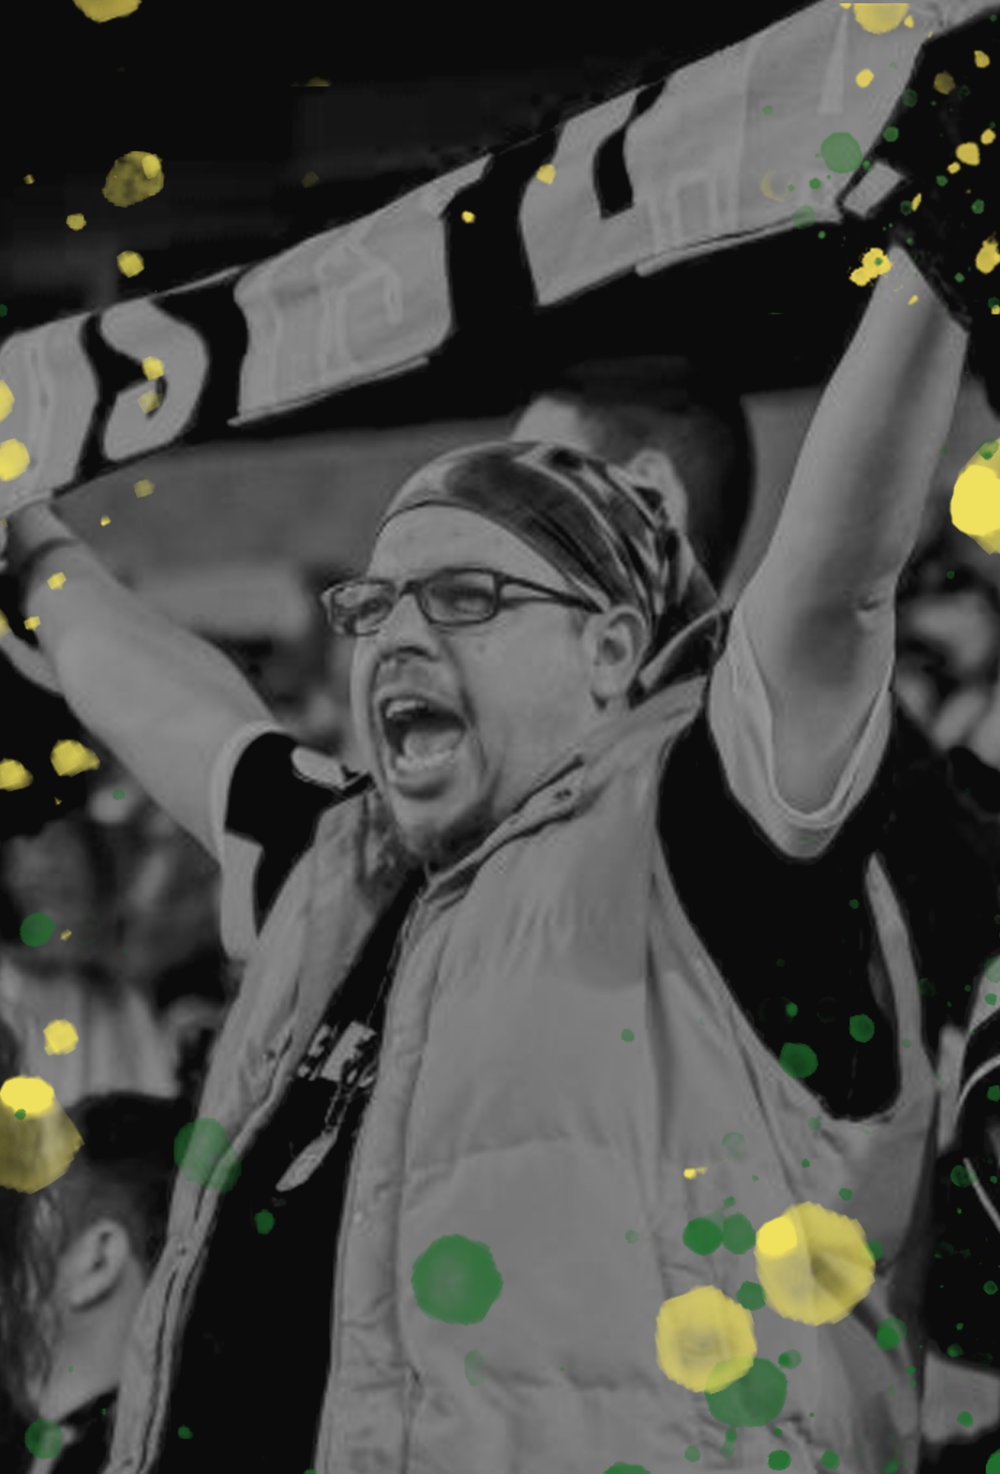 PREMIUM$15 - Free Domestic Beer or SodaValiant Roster Poster20% Off Food & Beverage+ Valiant Hooligan Scarf+ 20% Off Playoff Merch